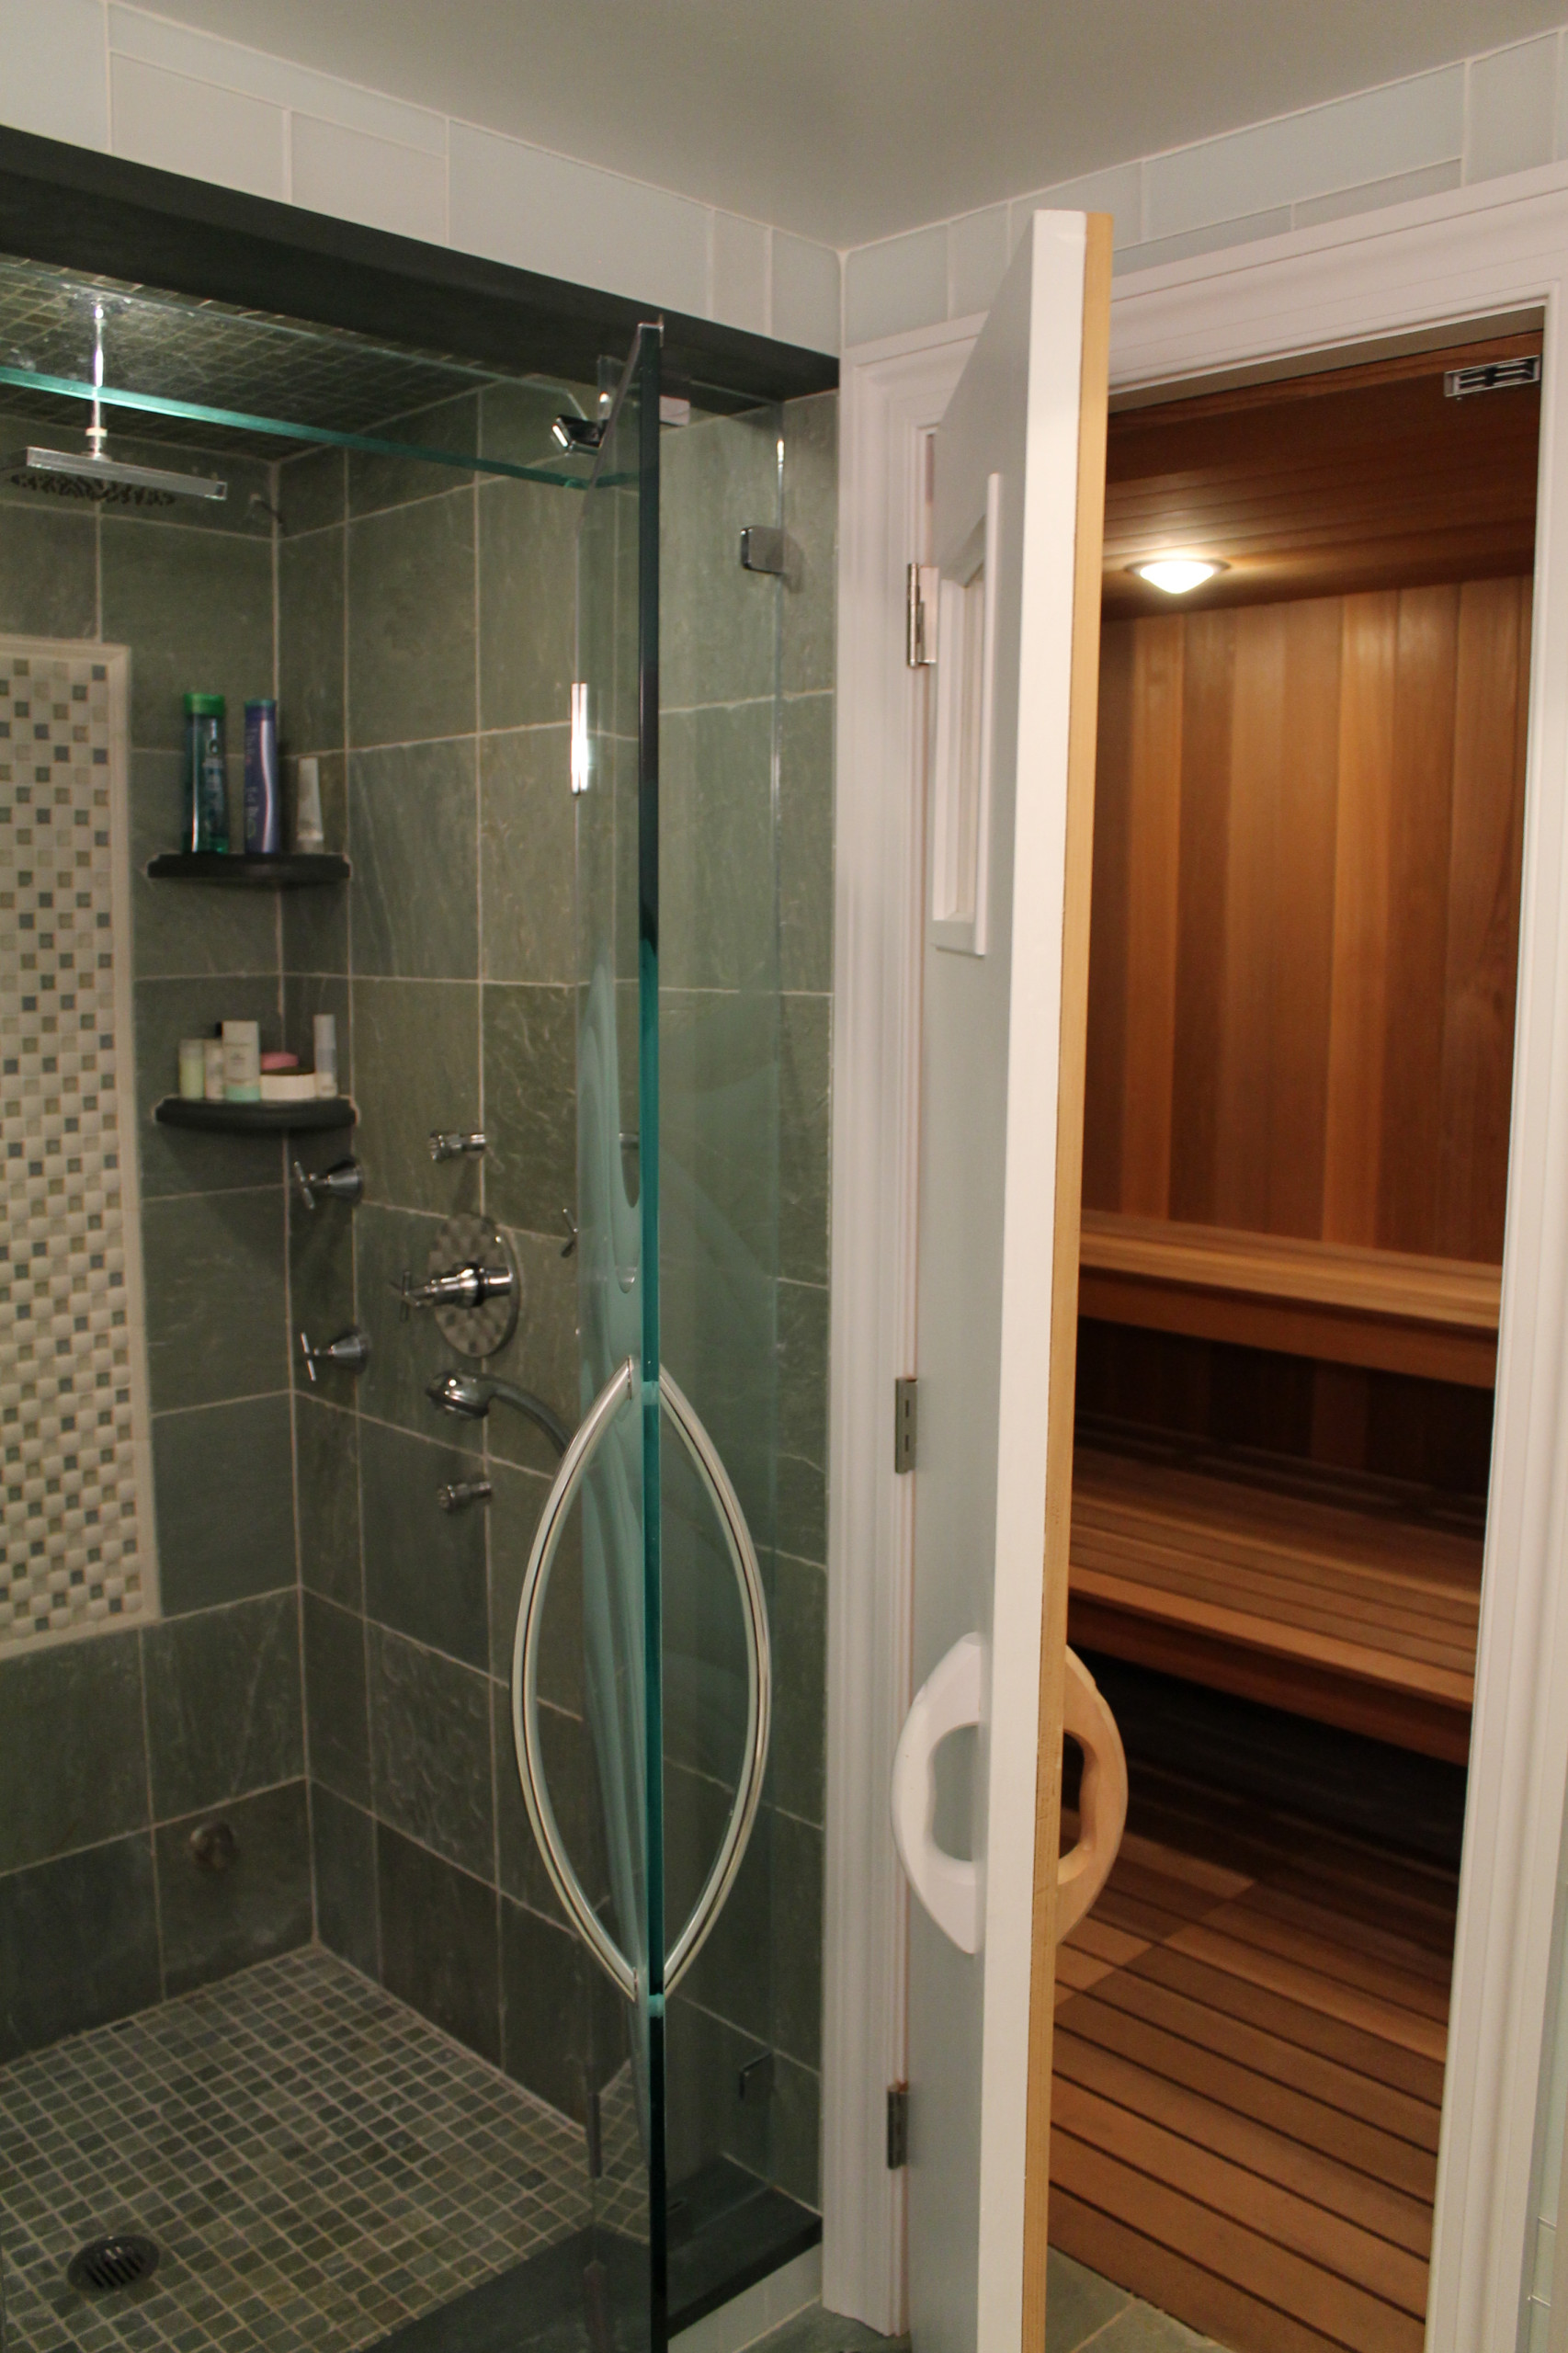 Steam Room Lawrence, NY Home